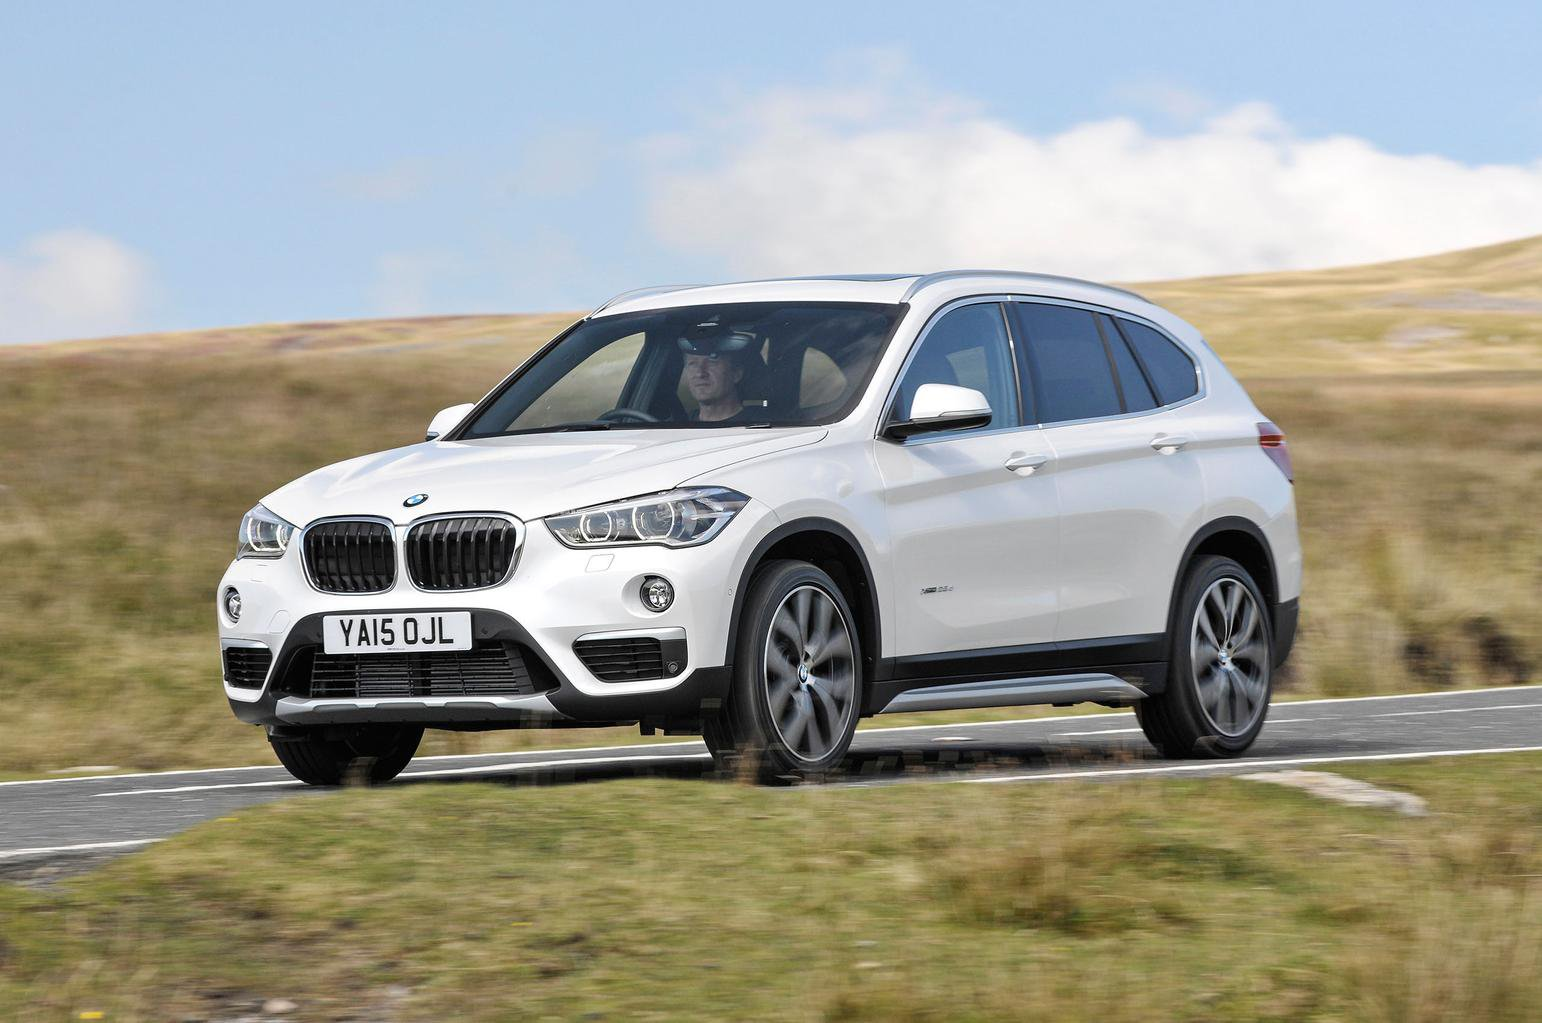 Deal of the Day: BMW X1